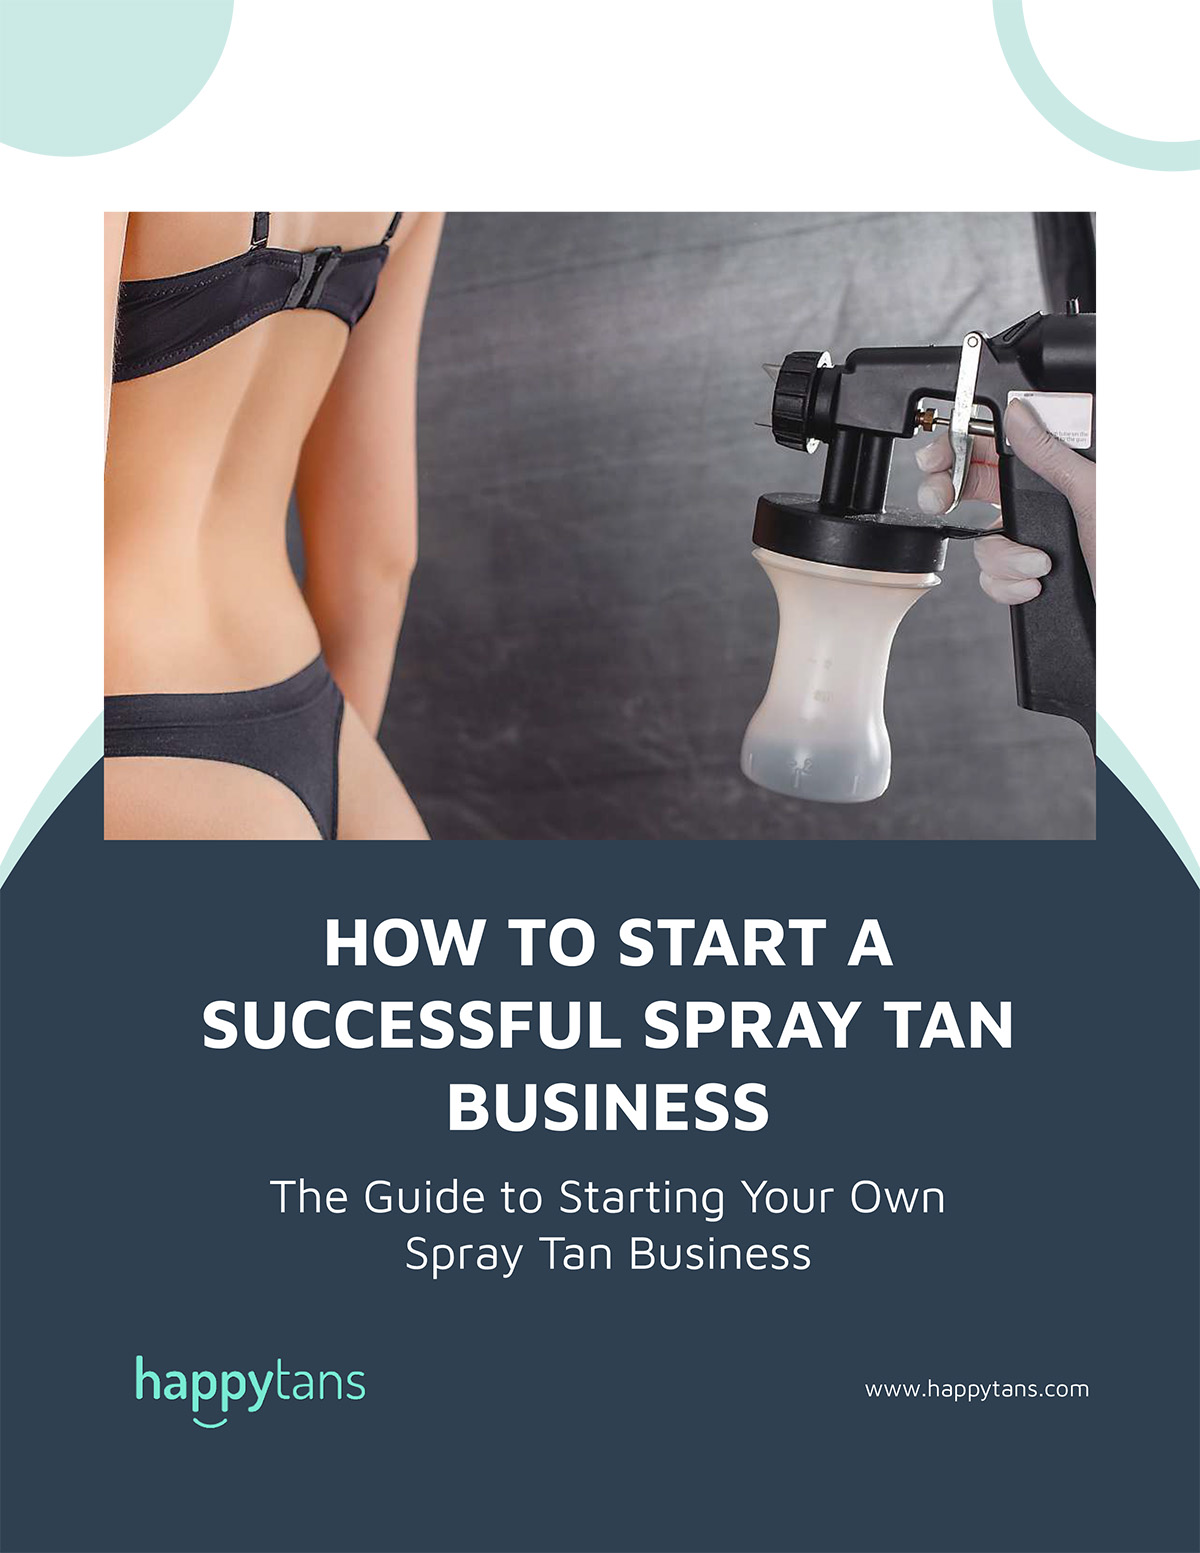 How-to-start-spray-tan-business